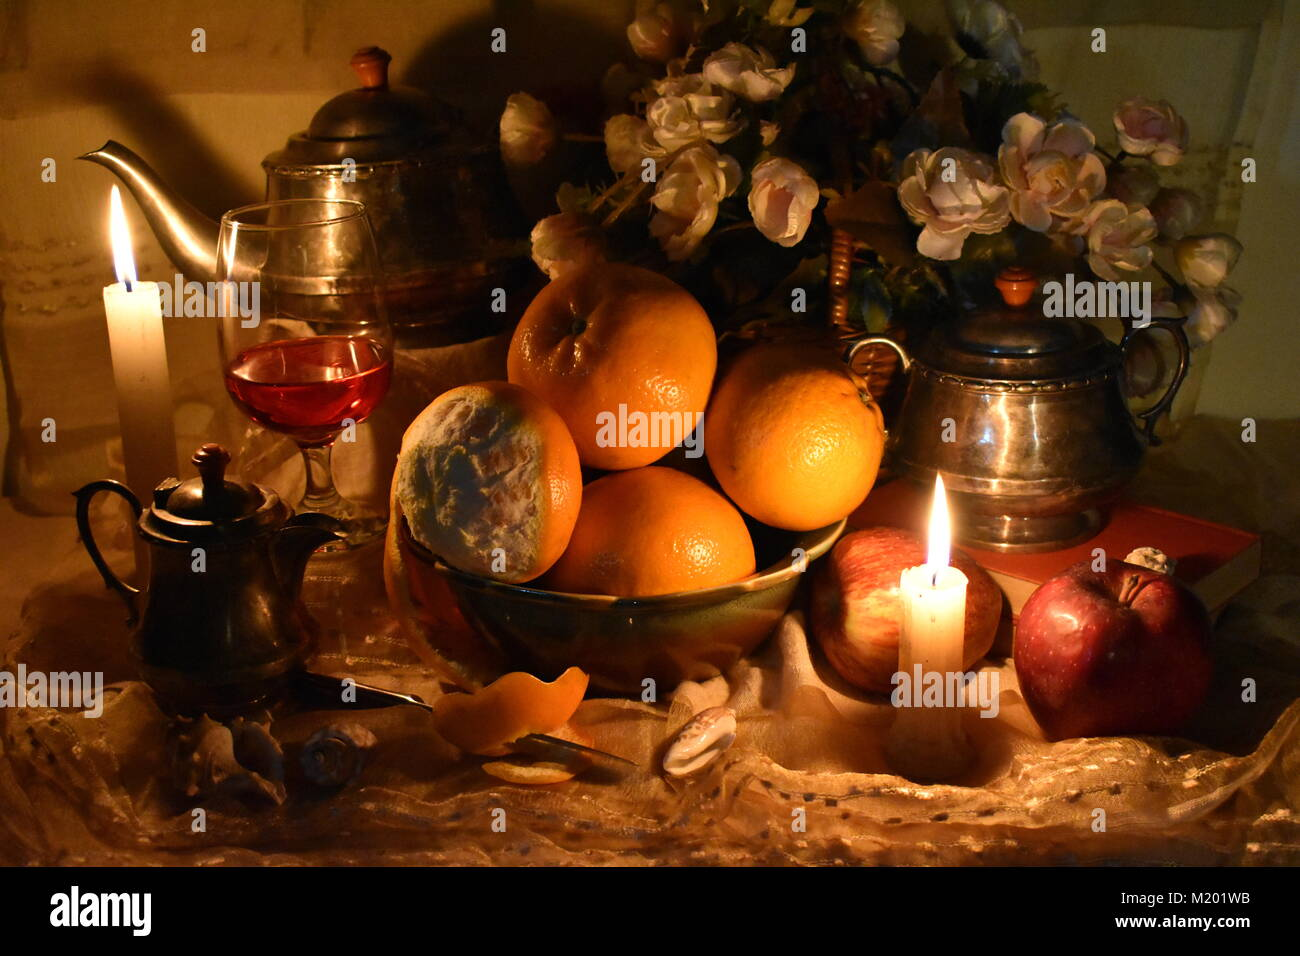 Still life inspired by the Dutch Masters. Classic still life with fruits, orange peel, old tea pot, books, candles, - Stock Image